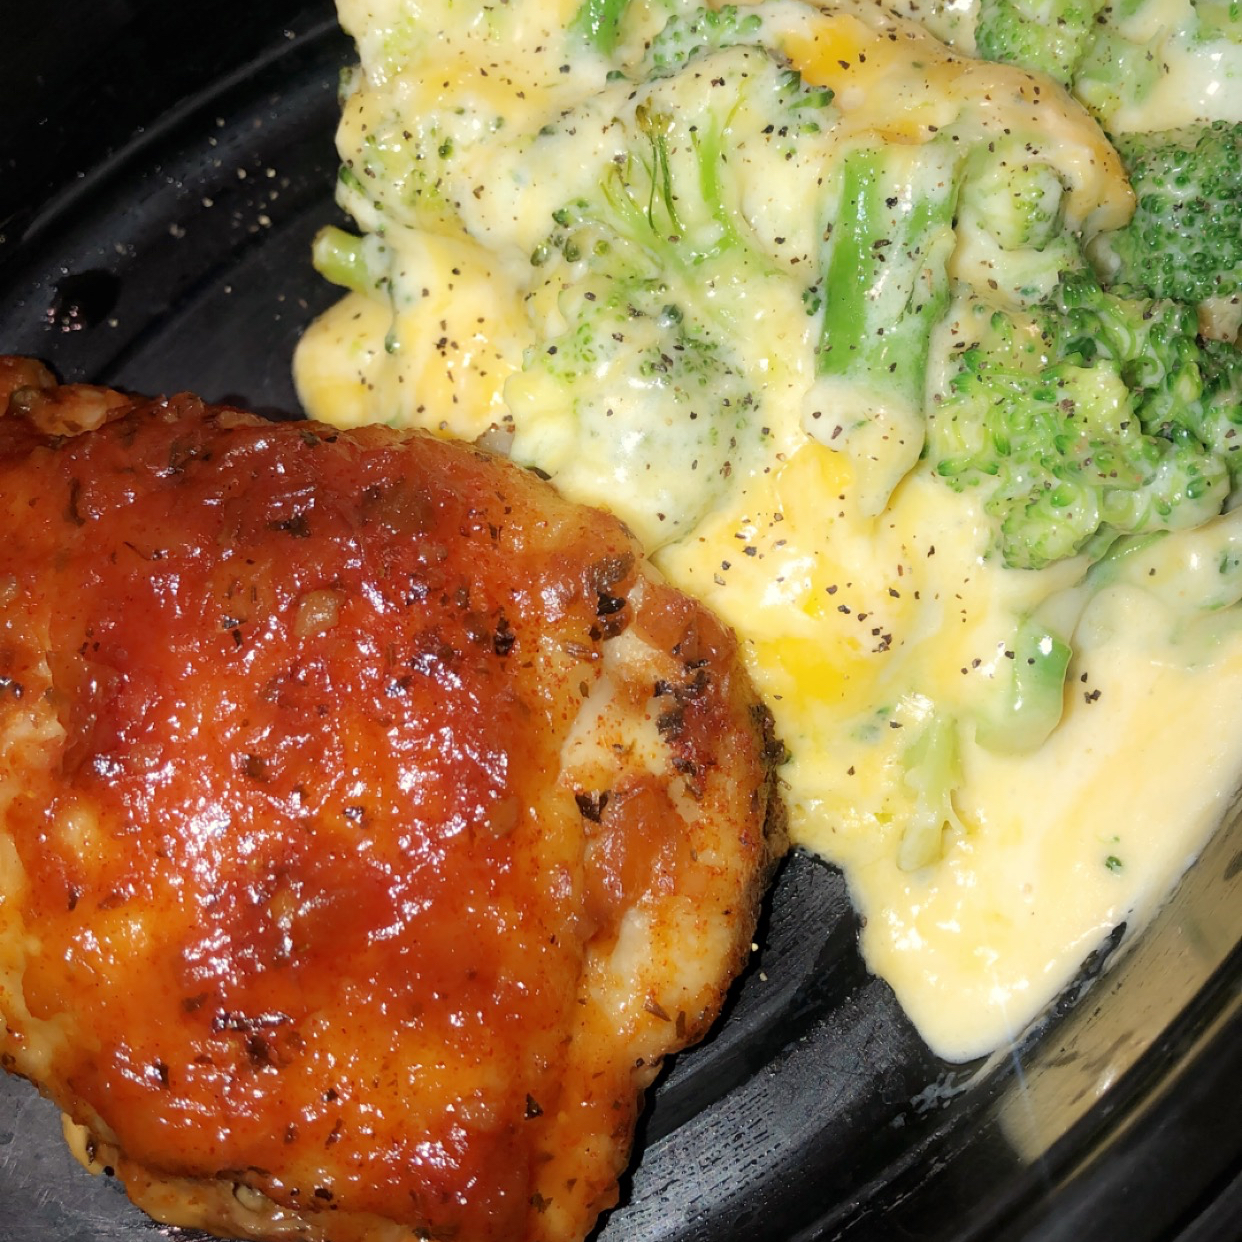 Broccoli Cheese Bake scarey86